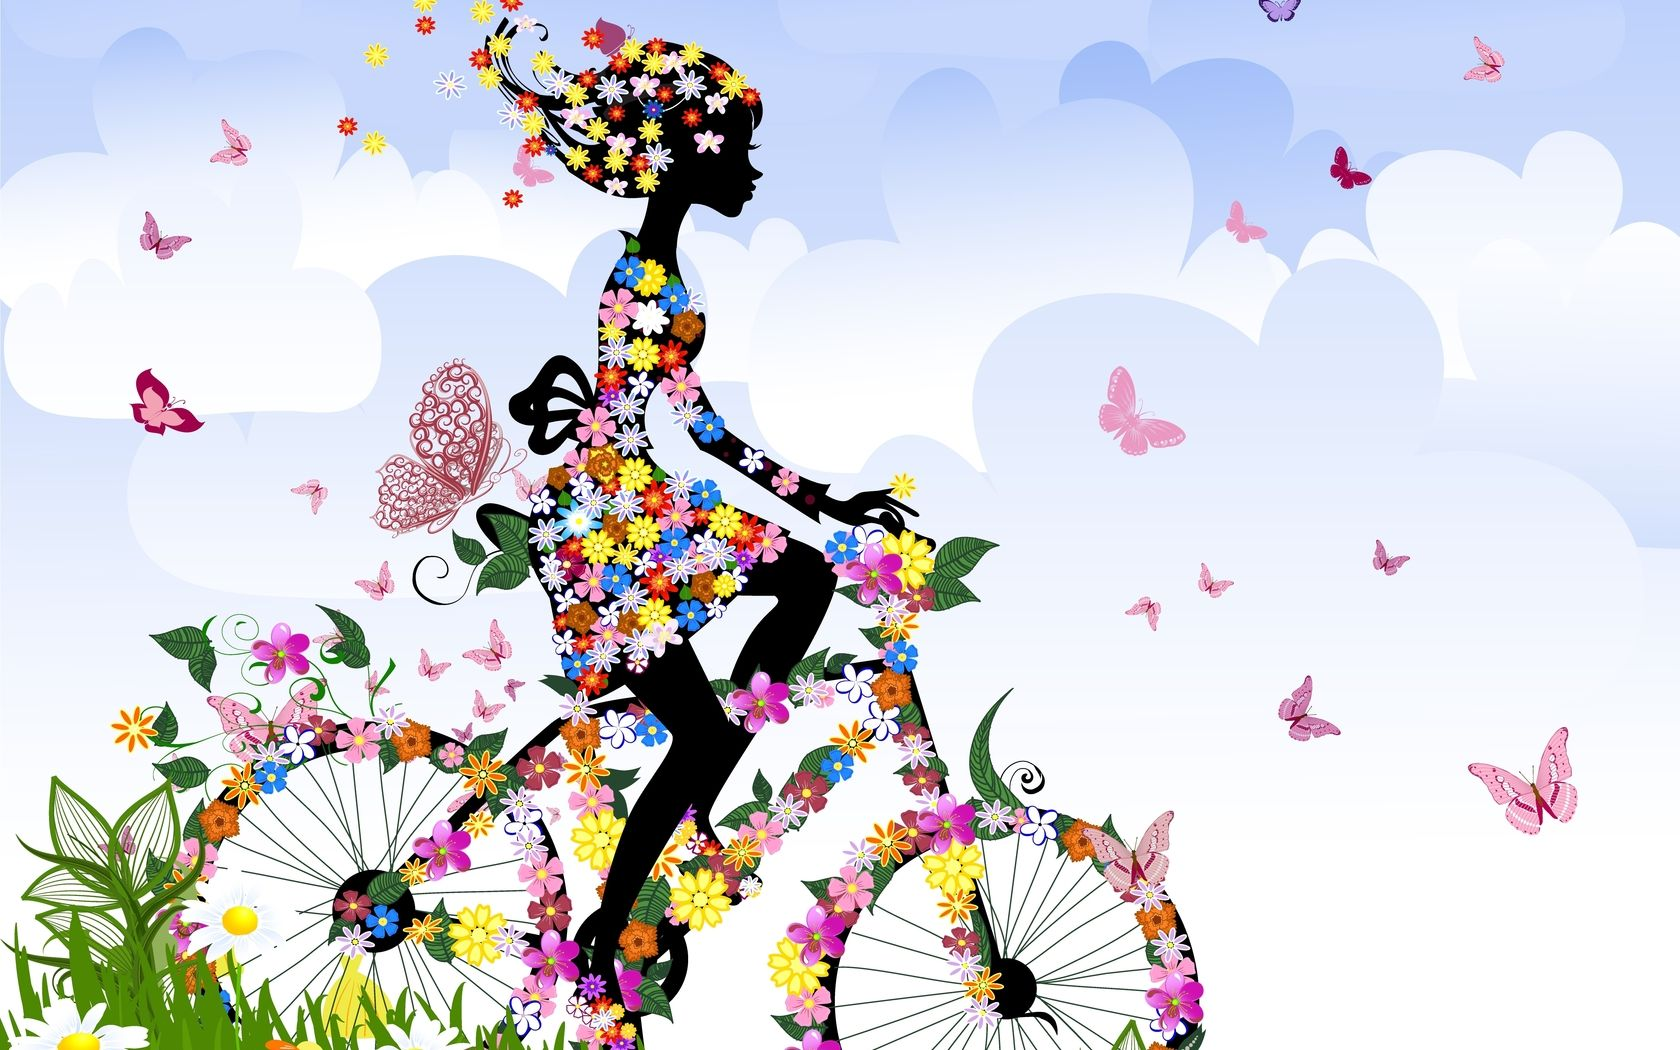 A Silhouette Of A Girl On A Bicycle Riding Through A Field Covered